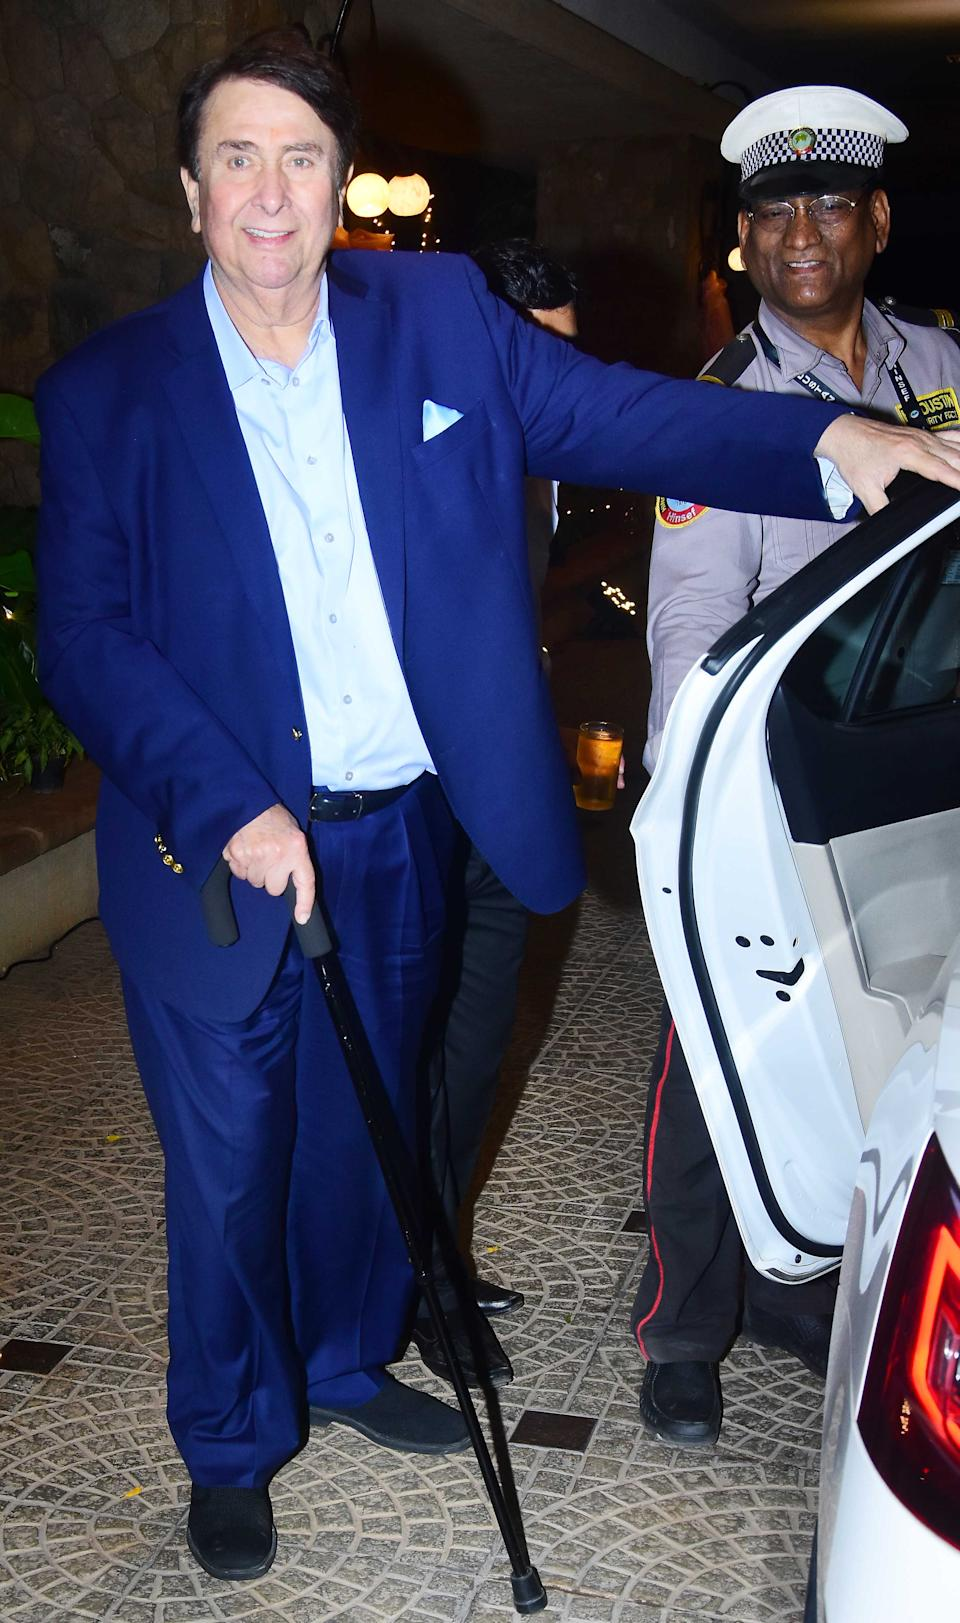 Randhir Kapoor clicked as he arrives at the venue.